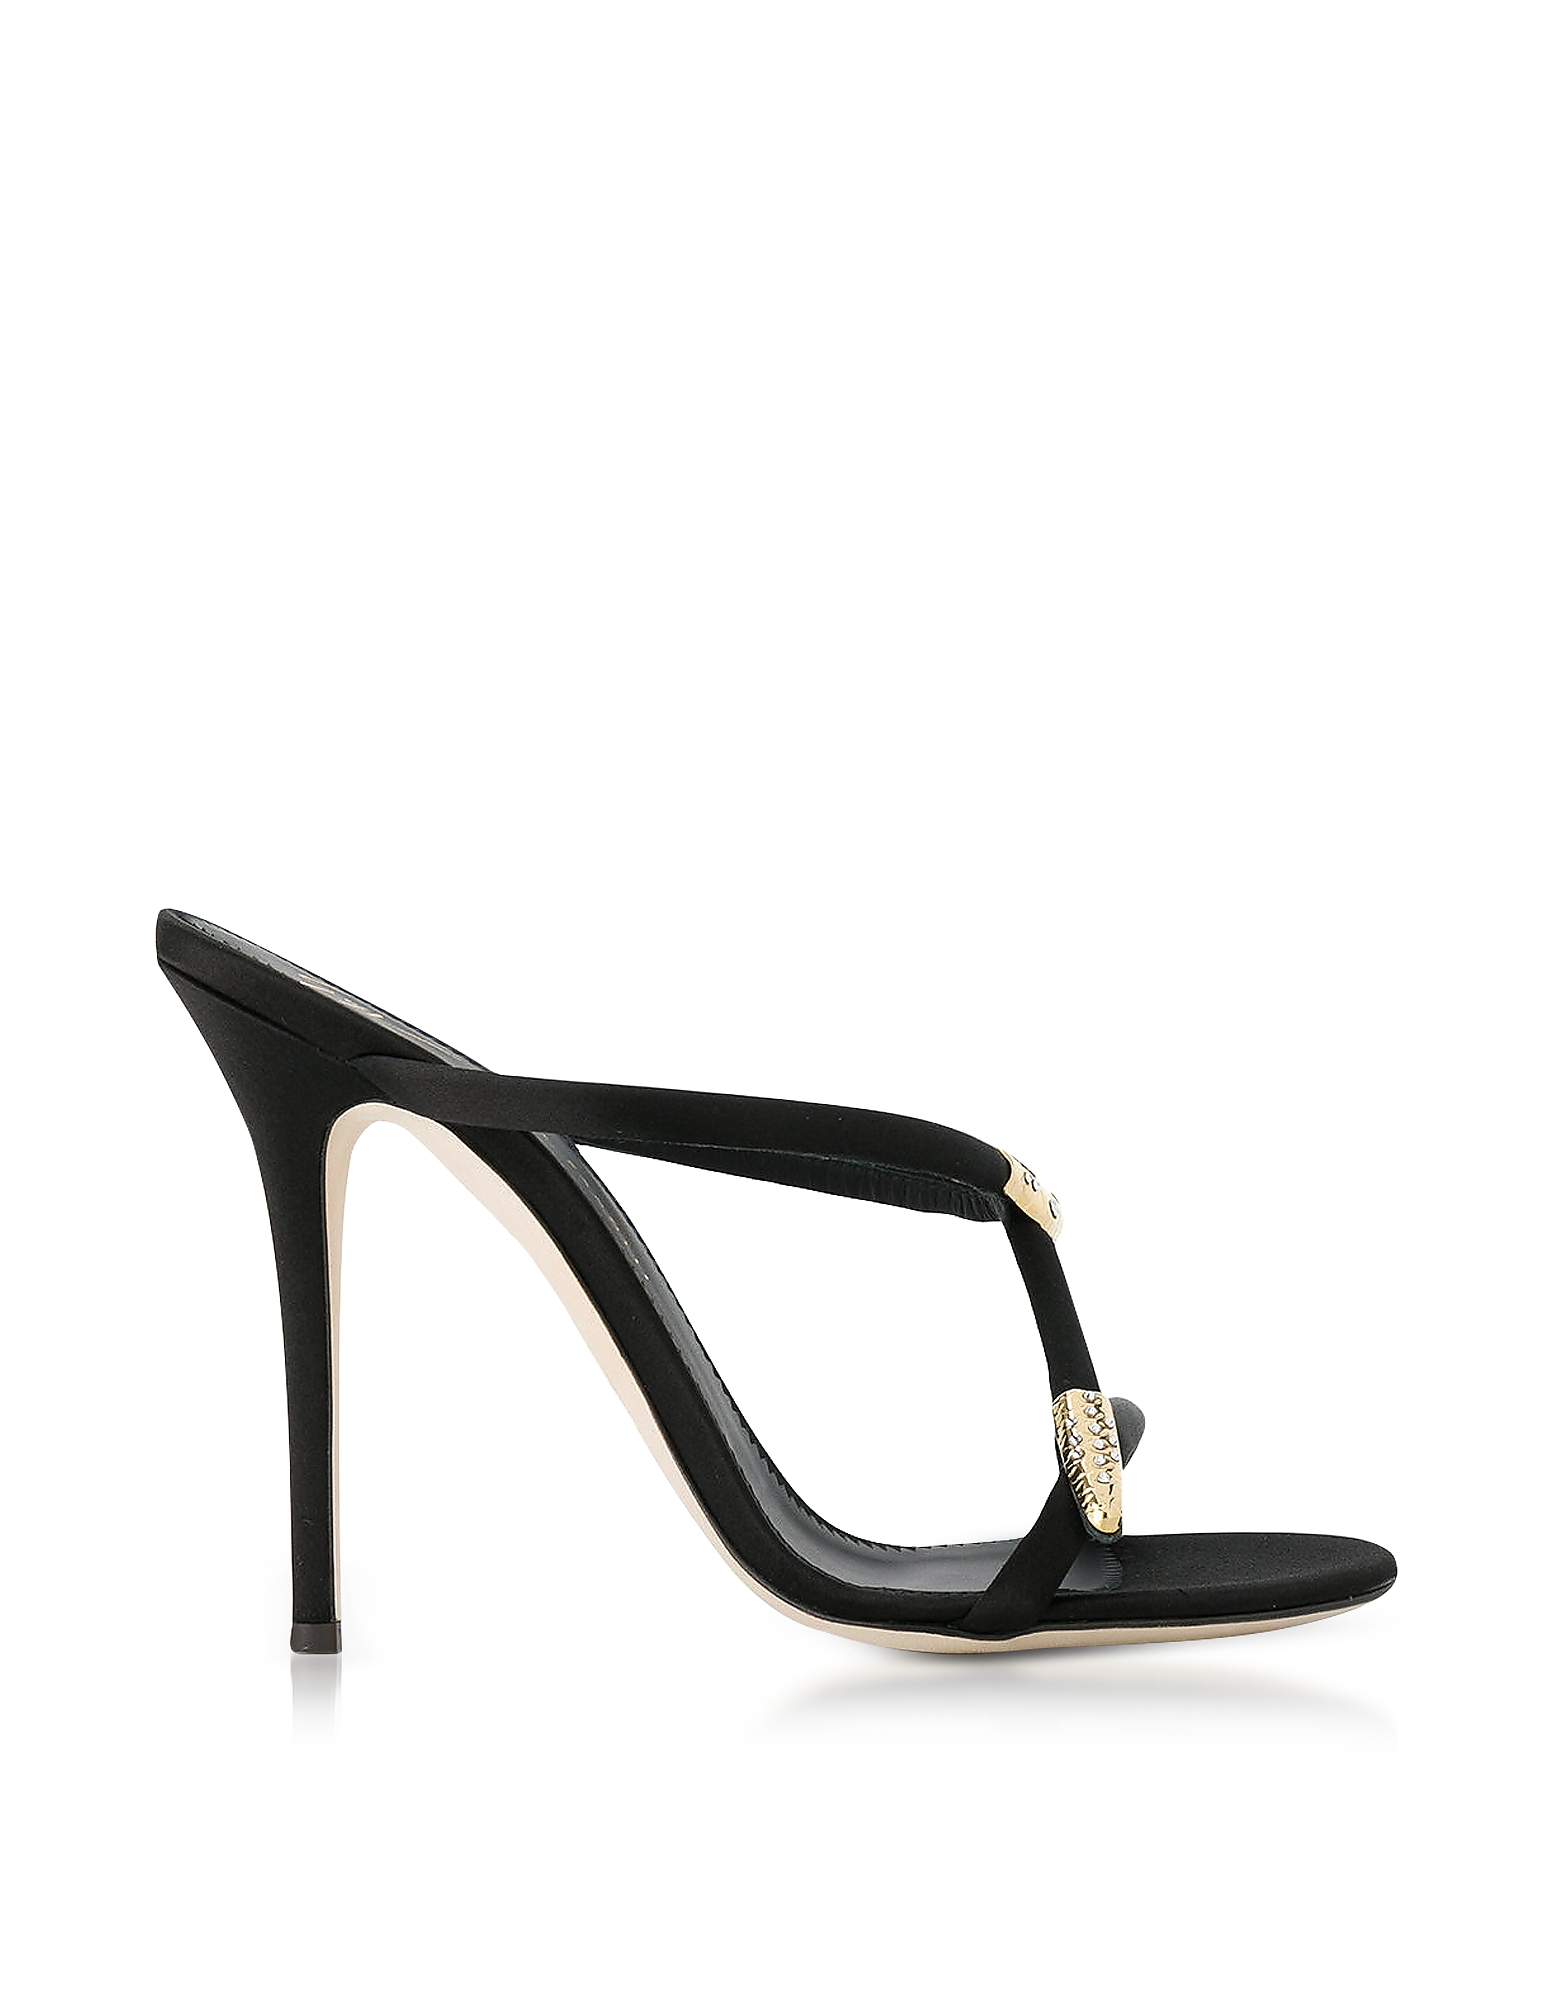 Giuseppe Zanotti Shoes, Black Satin High Heel Alien Sandals